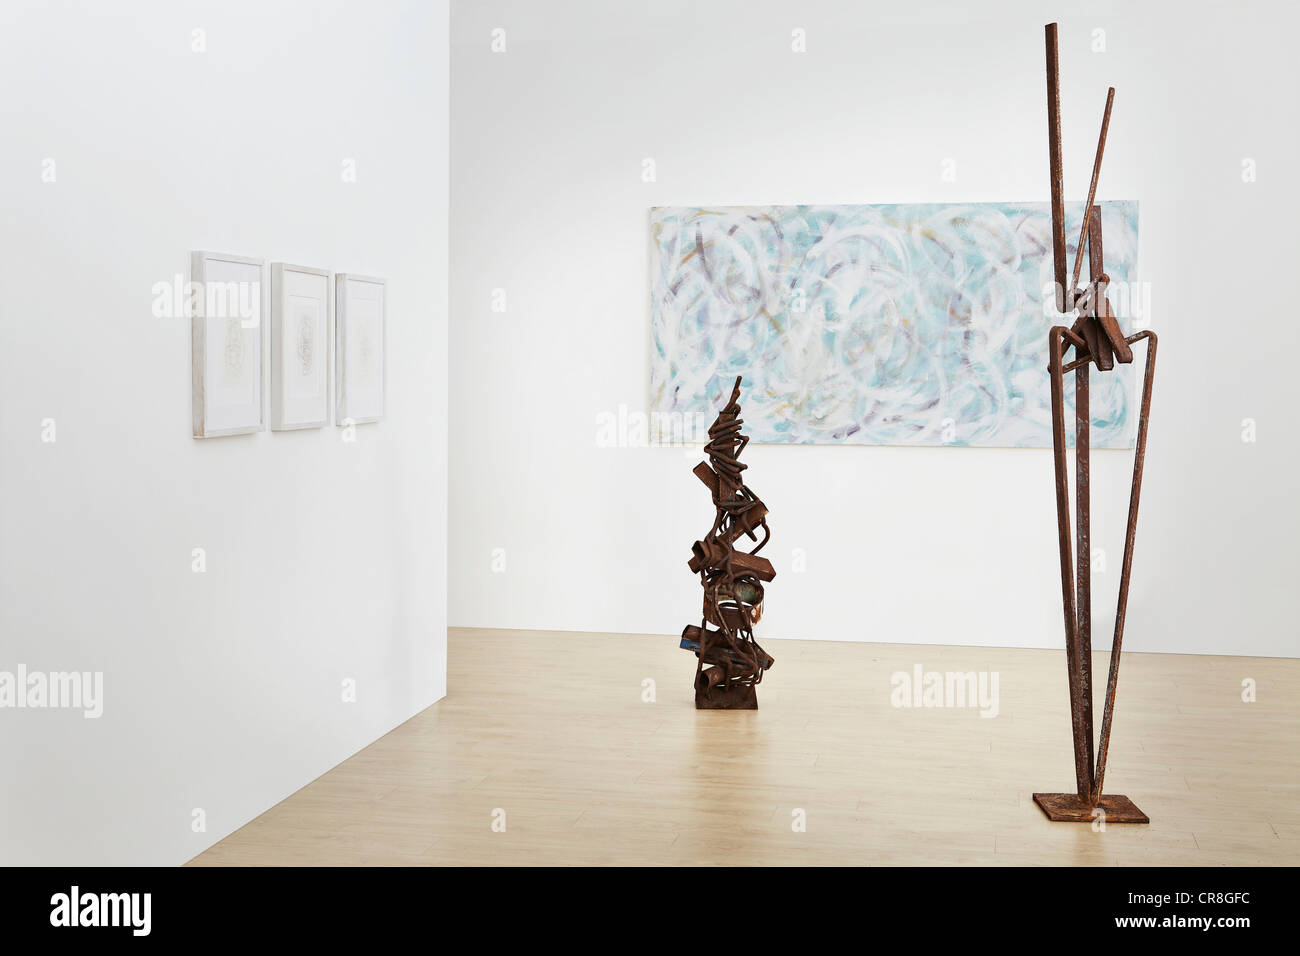 Sculpture and painting in art gallery - Stock Image